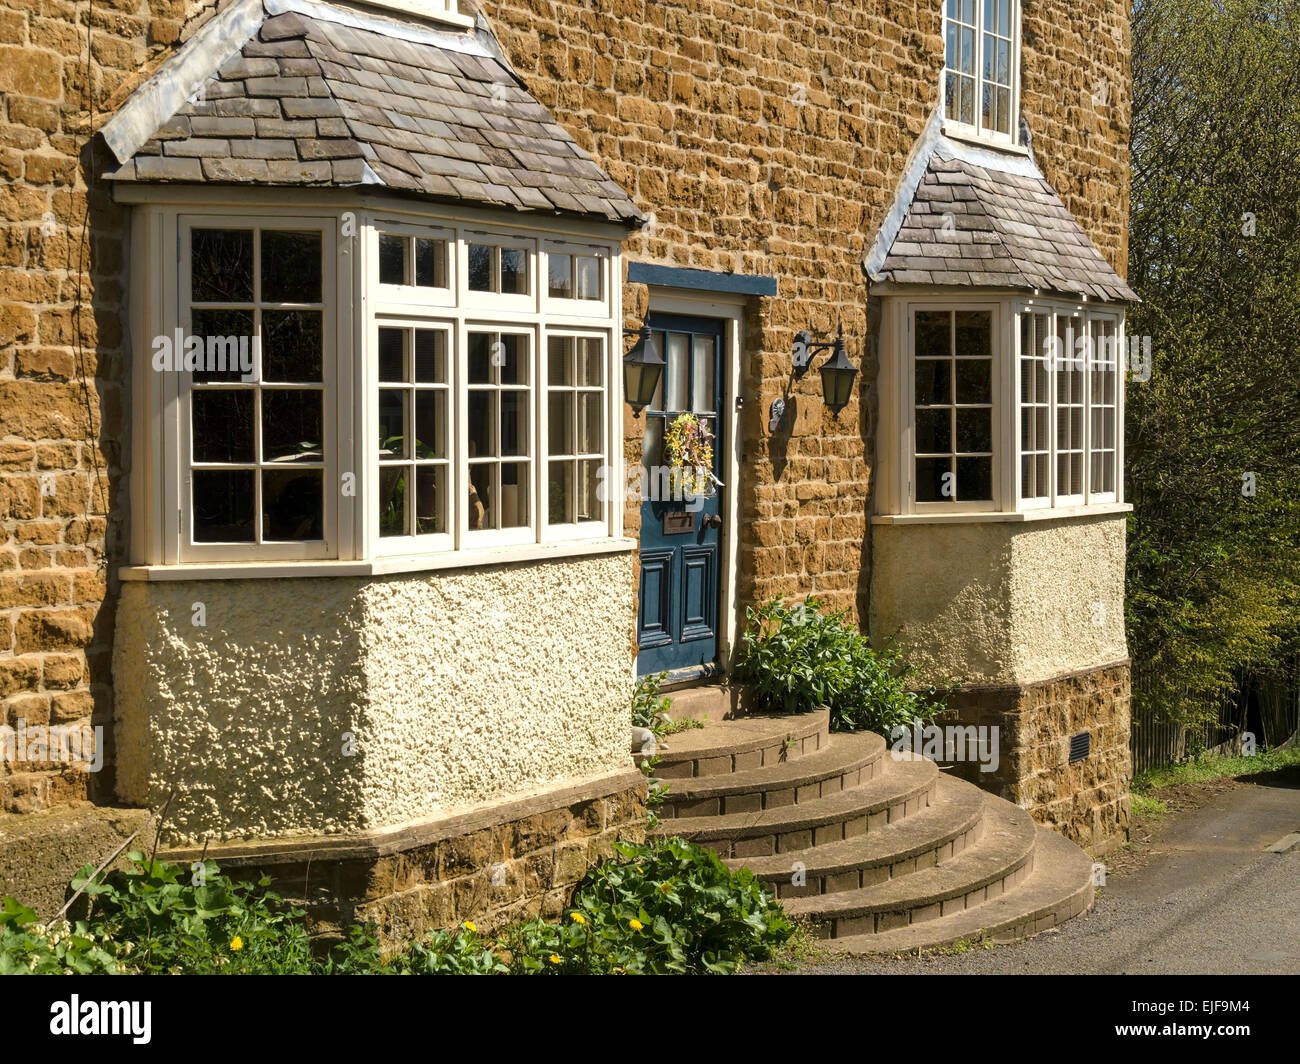 Front Elevation Window : Front elevation of attractive old stone house with bay